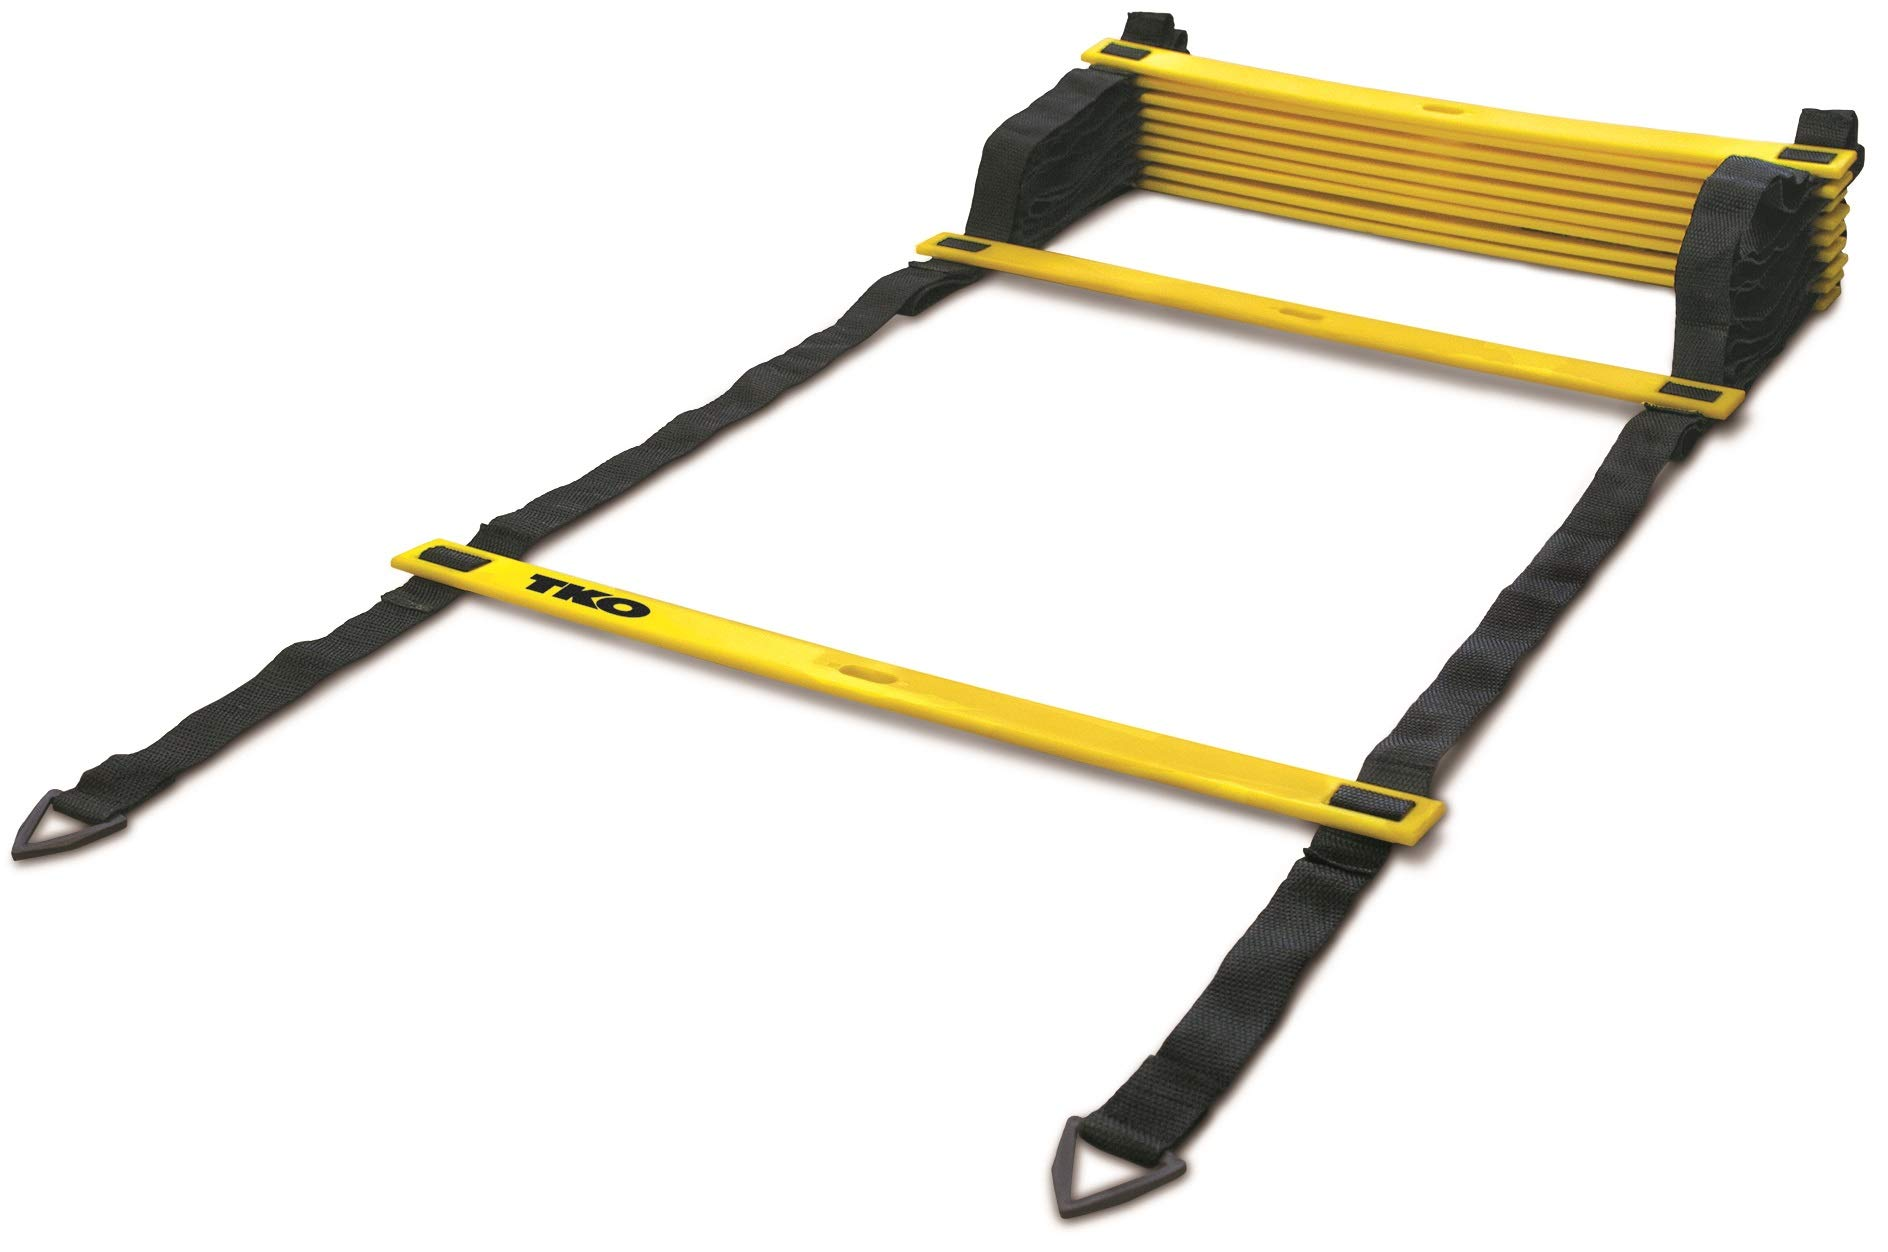 TKO Speed Ladder Step Training to Improve Agility and Coordination - Includes Ground Stakes and Carrying Bag